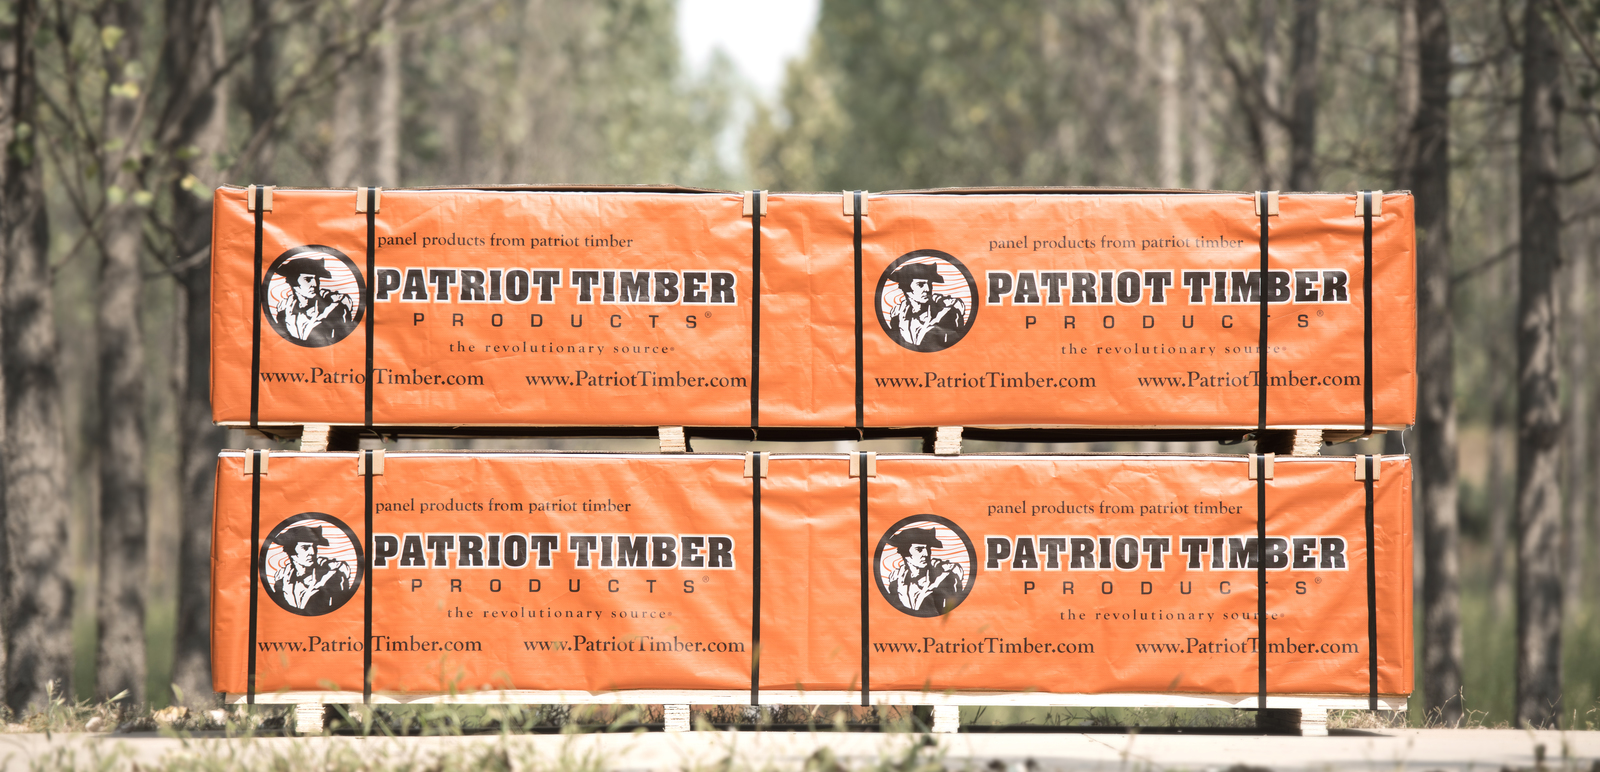 Plywood Panel Products from Patriot Timber